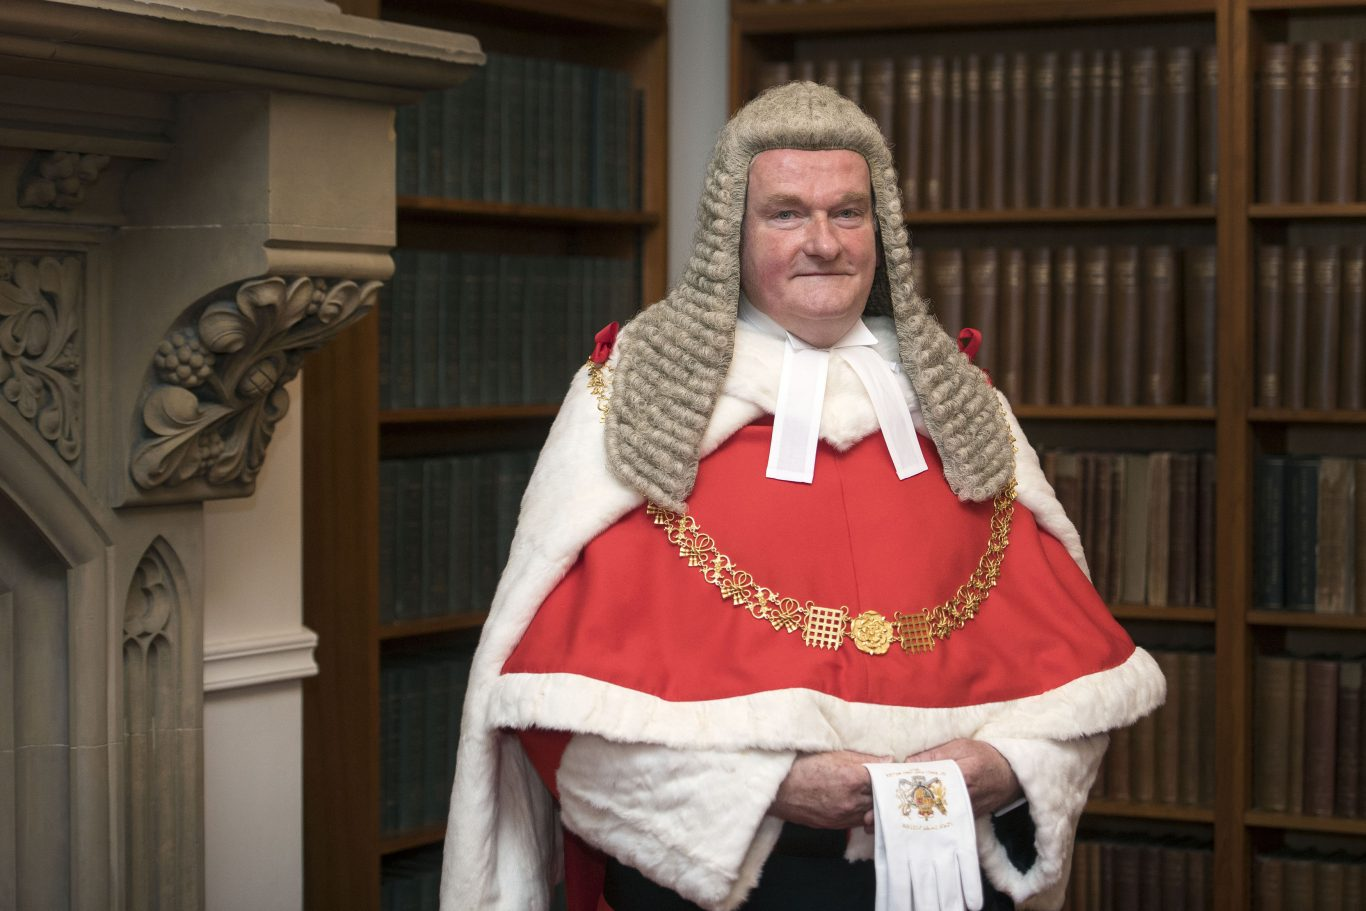 The new Lord Chief Justice, Sir Ian Burnett, at the Royal Courts of Justice in central London before his swearing-in ceremony (Victoria Jones/PA)